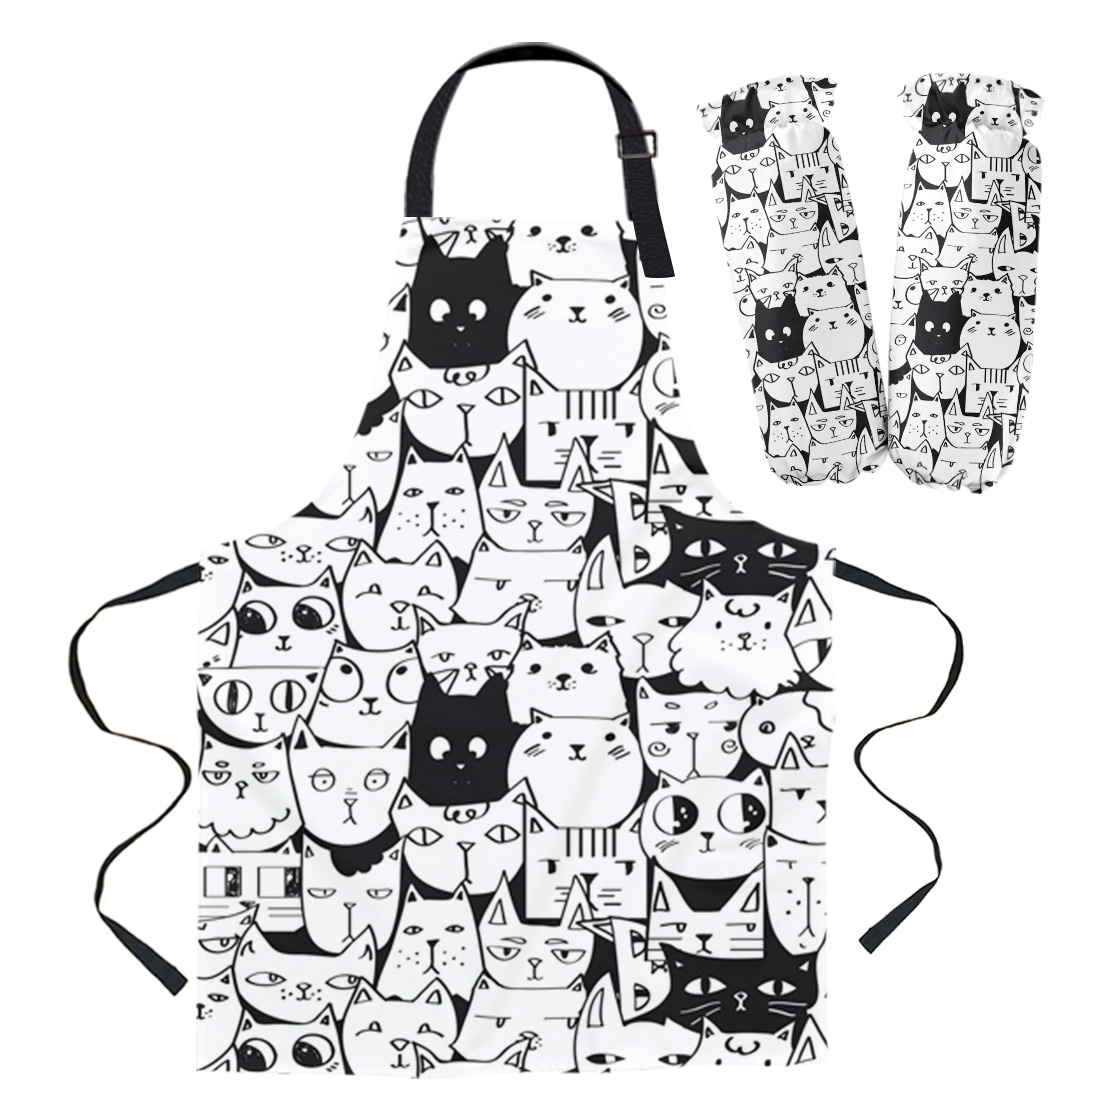 Cat Kitten Animal Black White Apron Cuff Oven Mitts Woman Kid Bibs Home Cooking Baking Coffee Shop Cleaning Kitchen Accessories Aprons Aliexpress